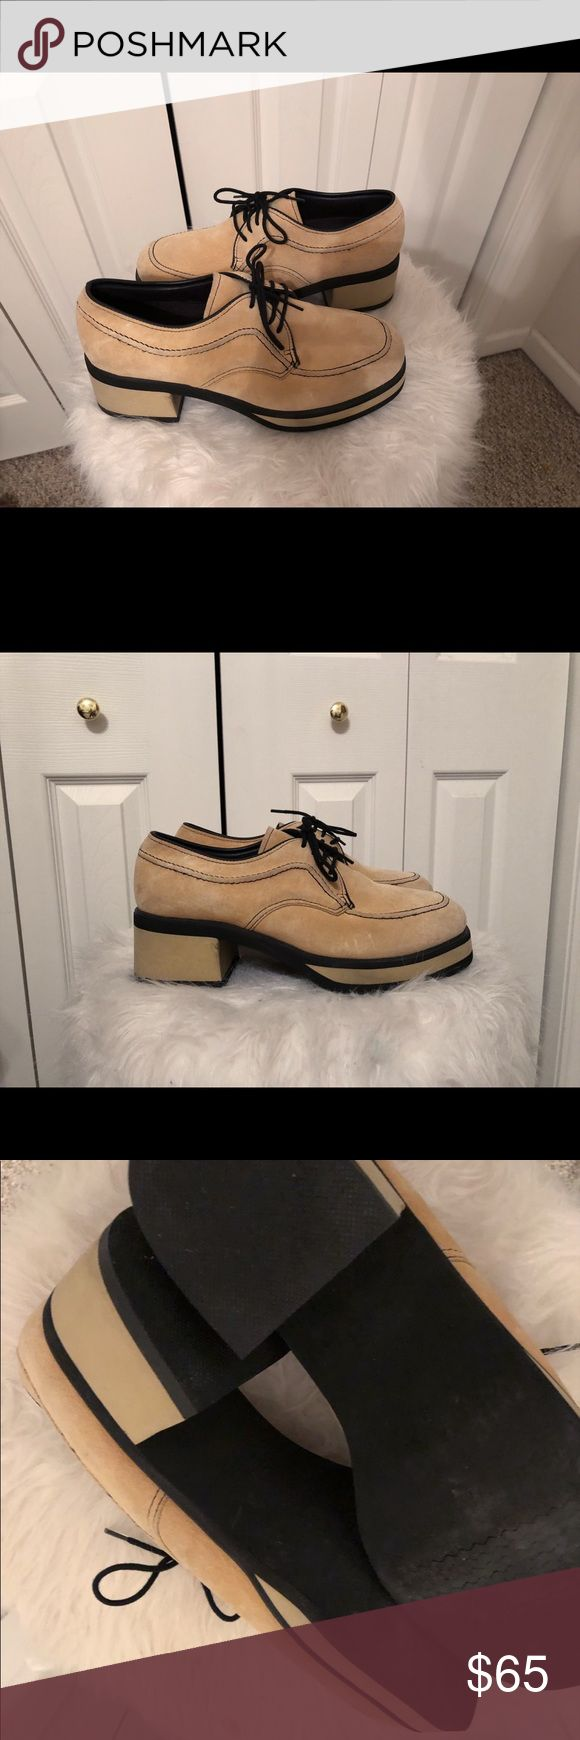 Hush Puppies Stacked Block Heel Loafers Classic with a fun twist. Like new, size 8.5. Hush Puppies Shoes